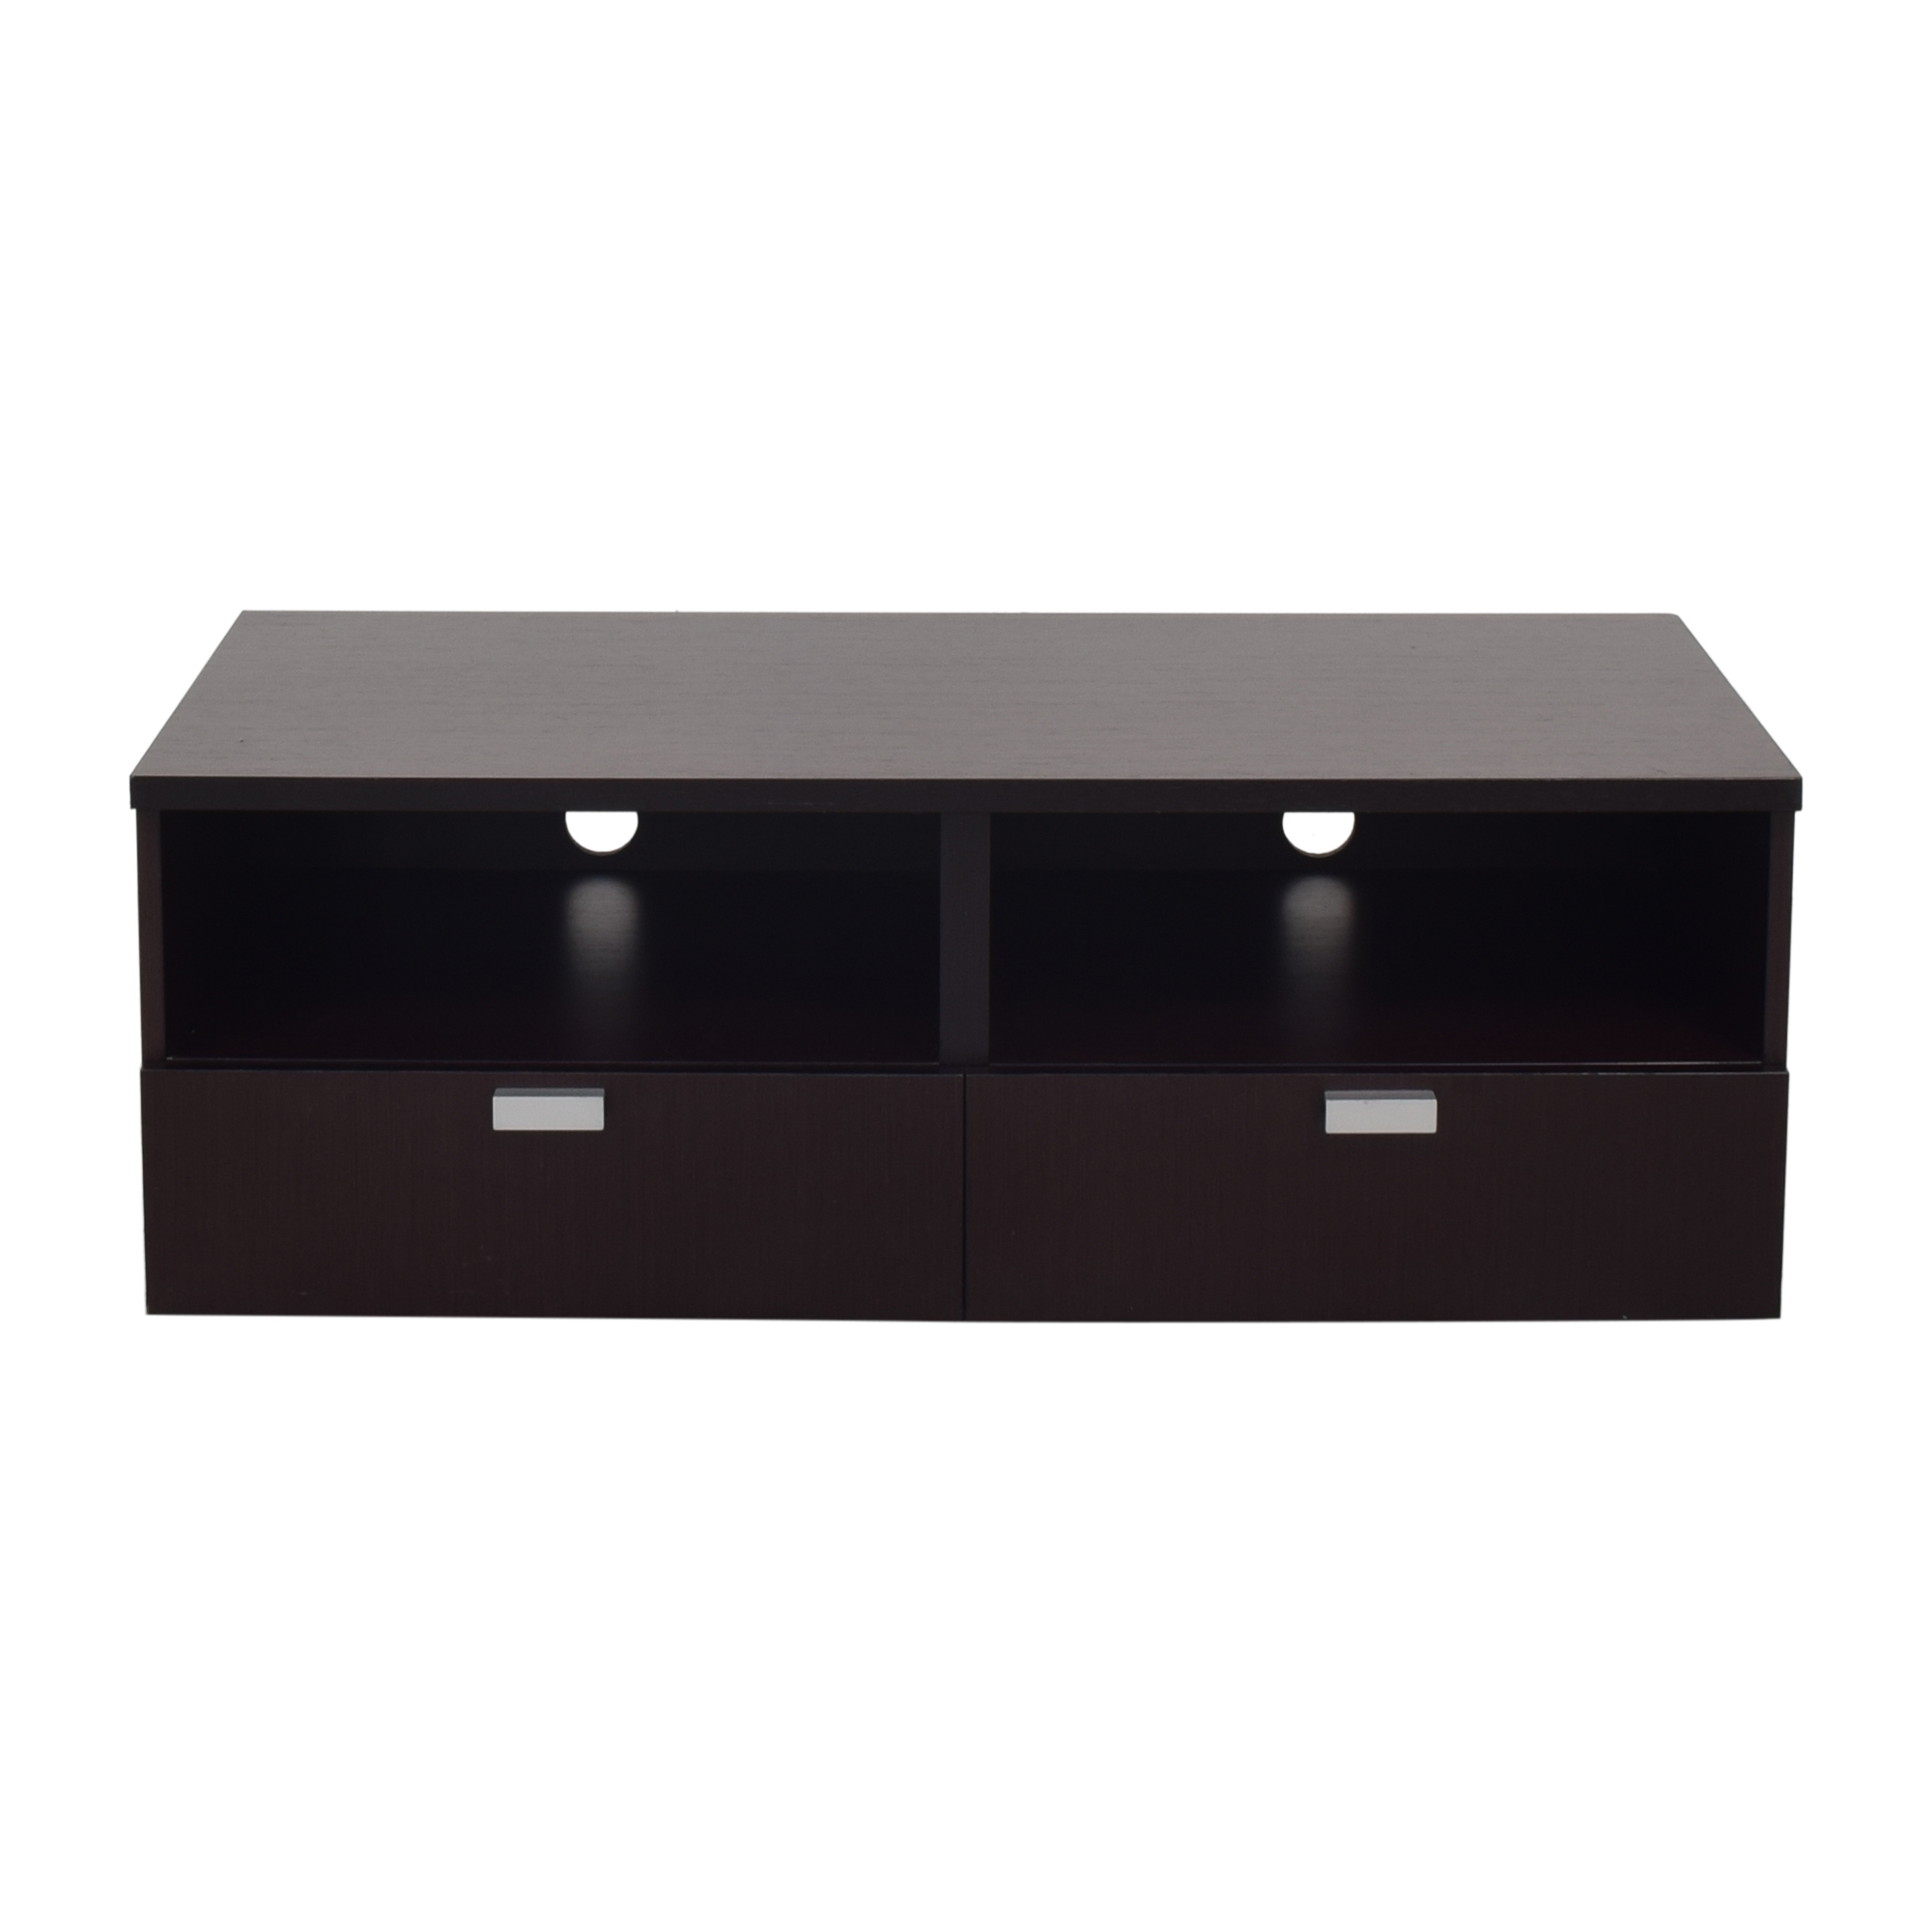 Jensen-Lewis Jensen-Lewis Media Console dark brown